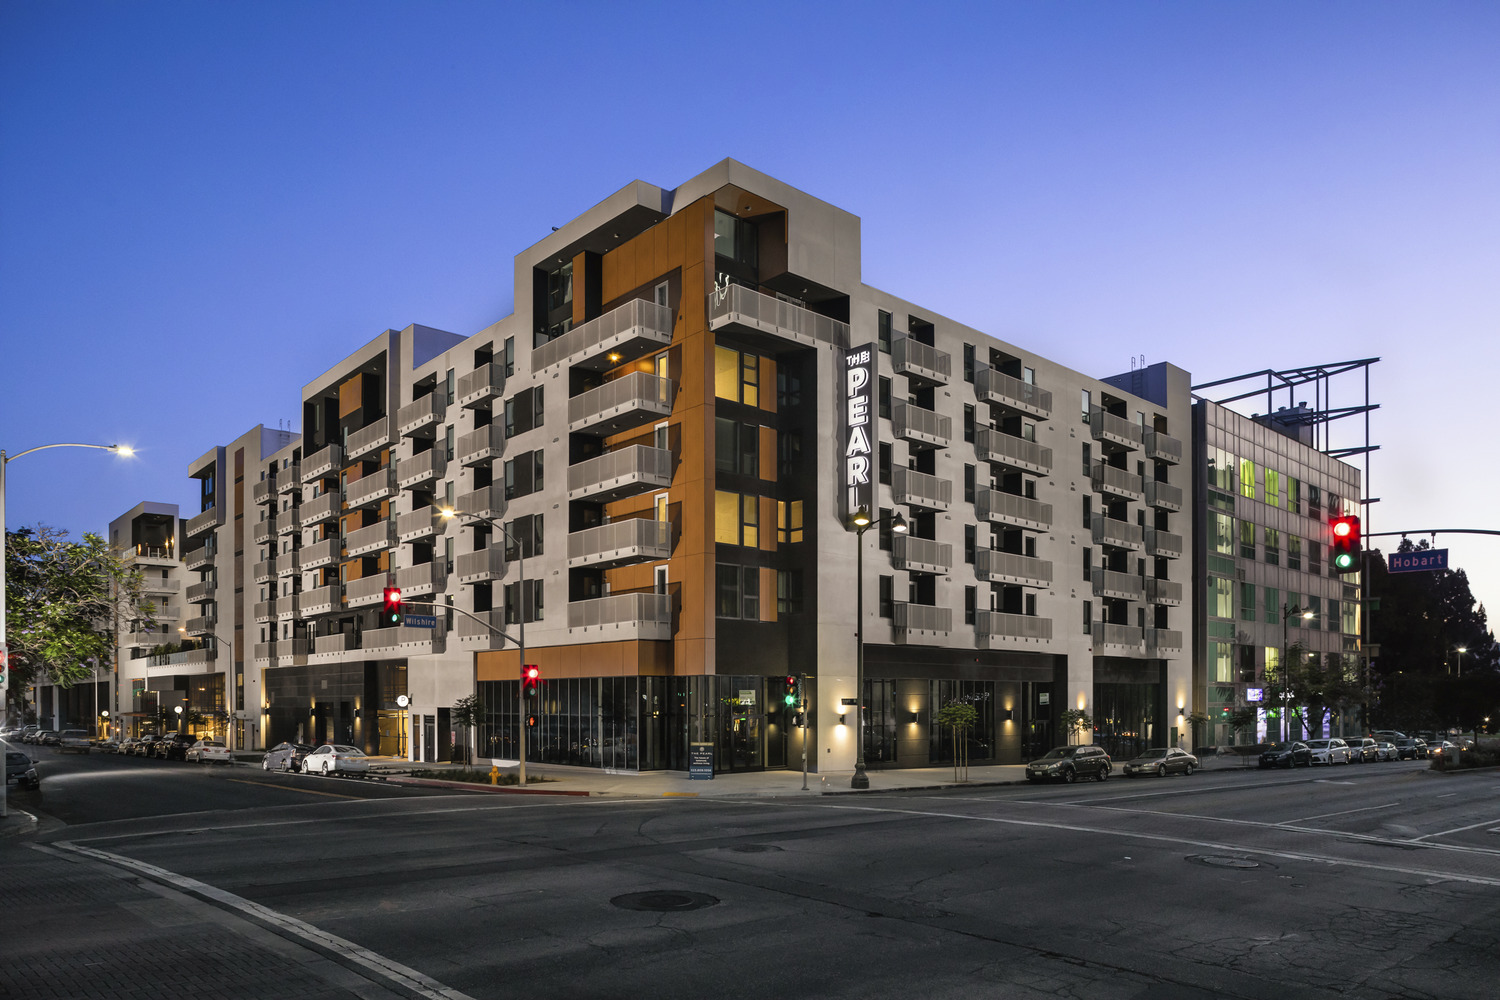 CBG builds The Pearl on Wilshire, a 346-Unit Mixed-Use Apartment Community with Podium Parking in Los Angeles, CA